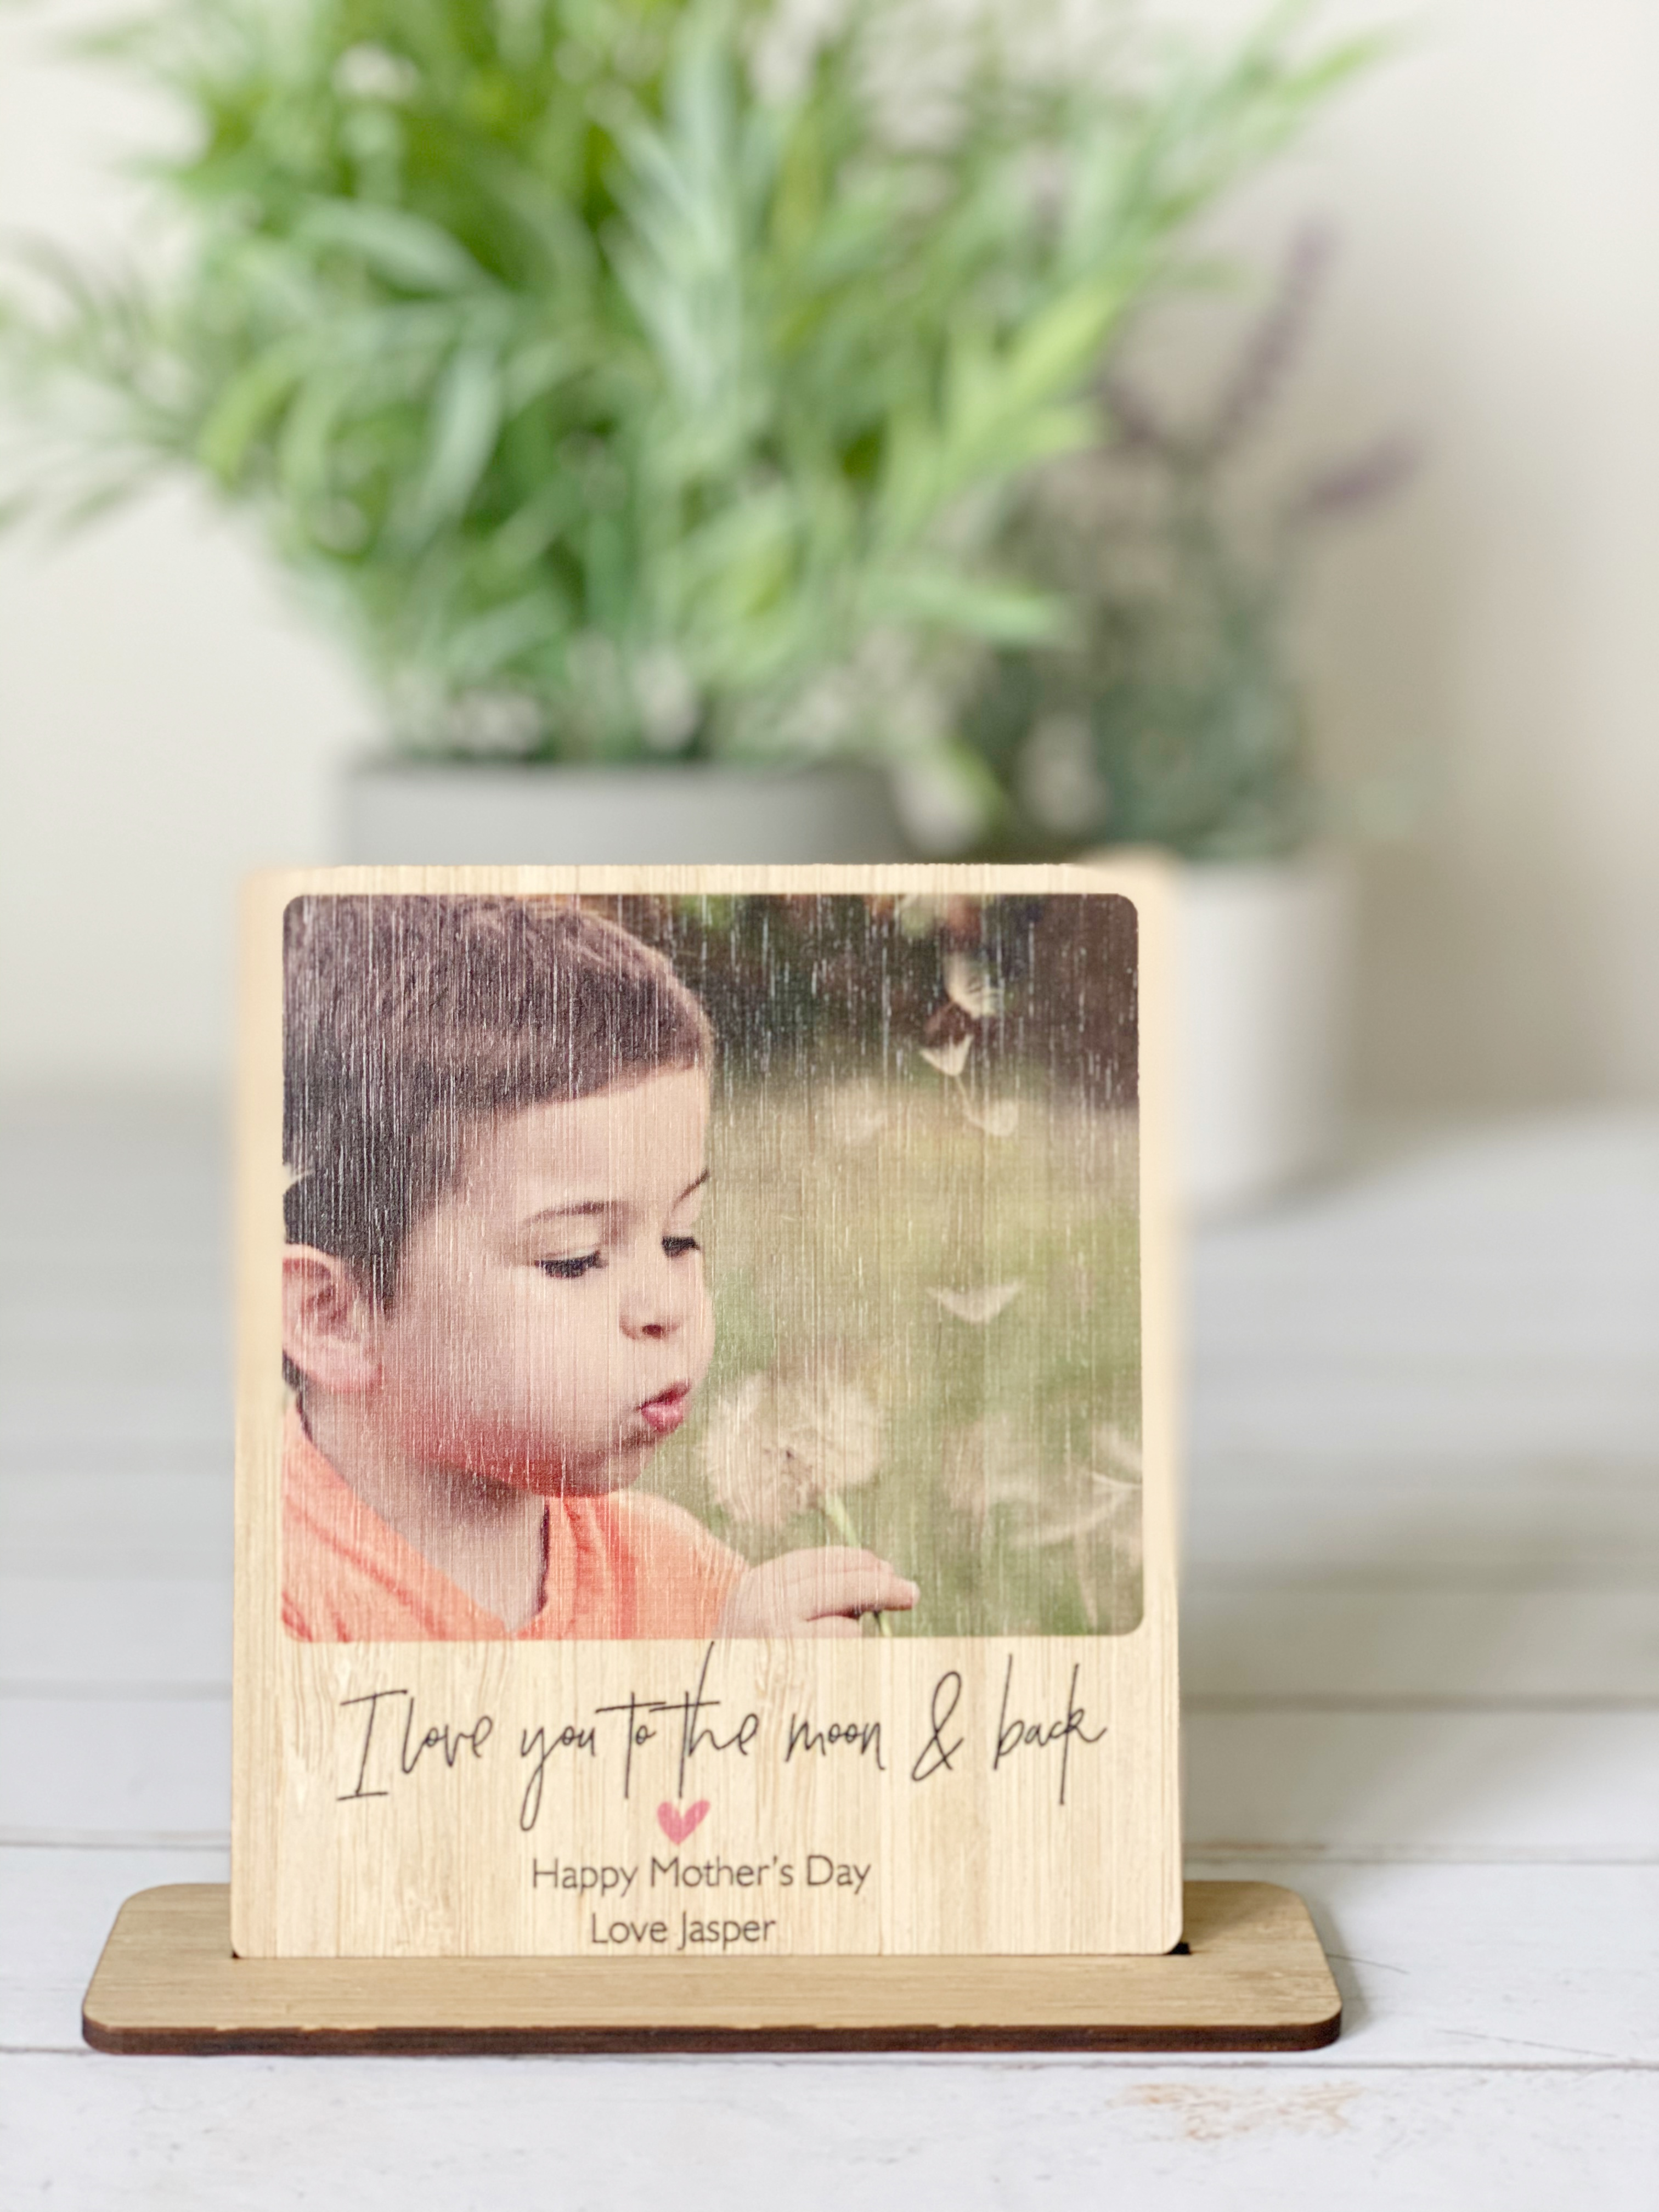 I love you to the moon and back - Polaroid Desk stand